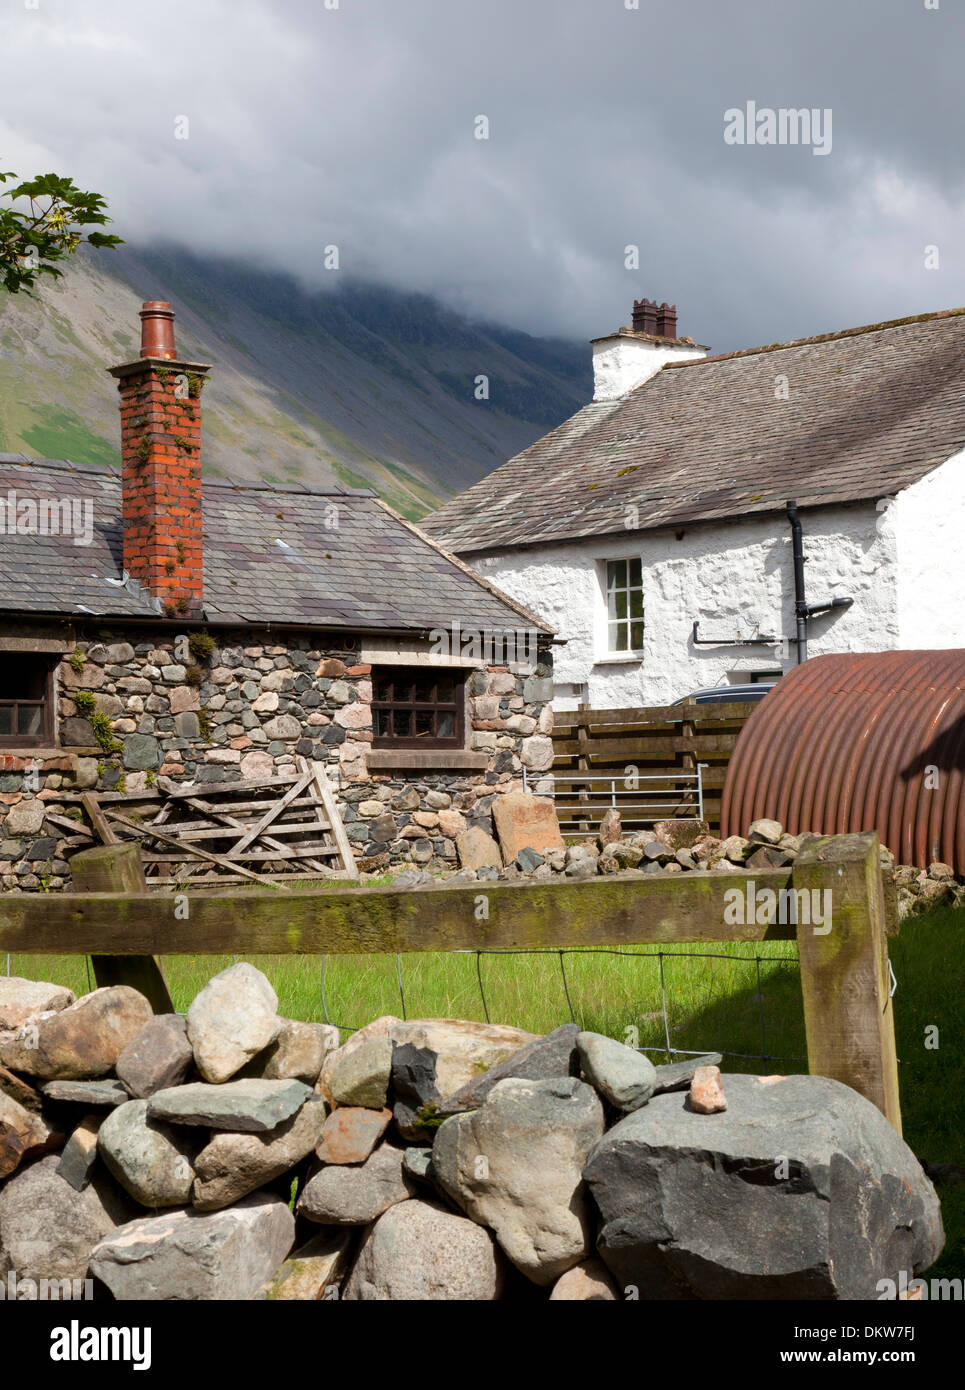 Traditional Lakeland stone farm, Wasdale Head, the Lake District, Cumbria, England. - Stock Image